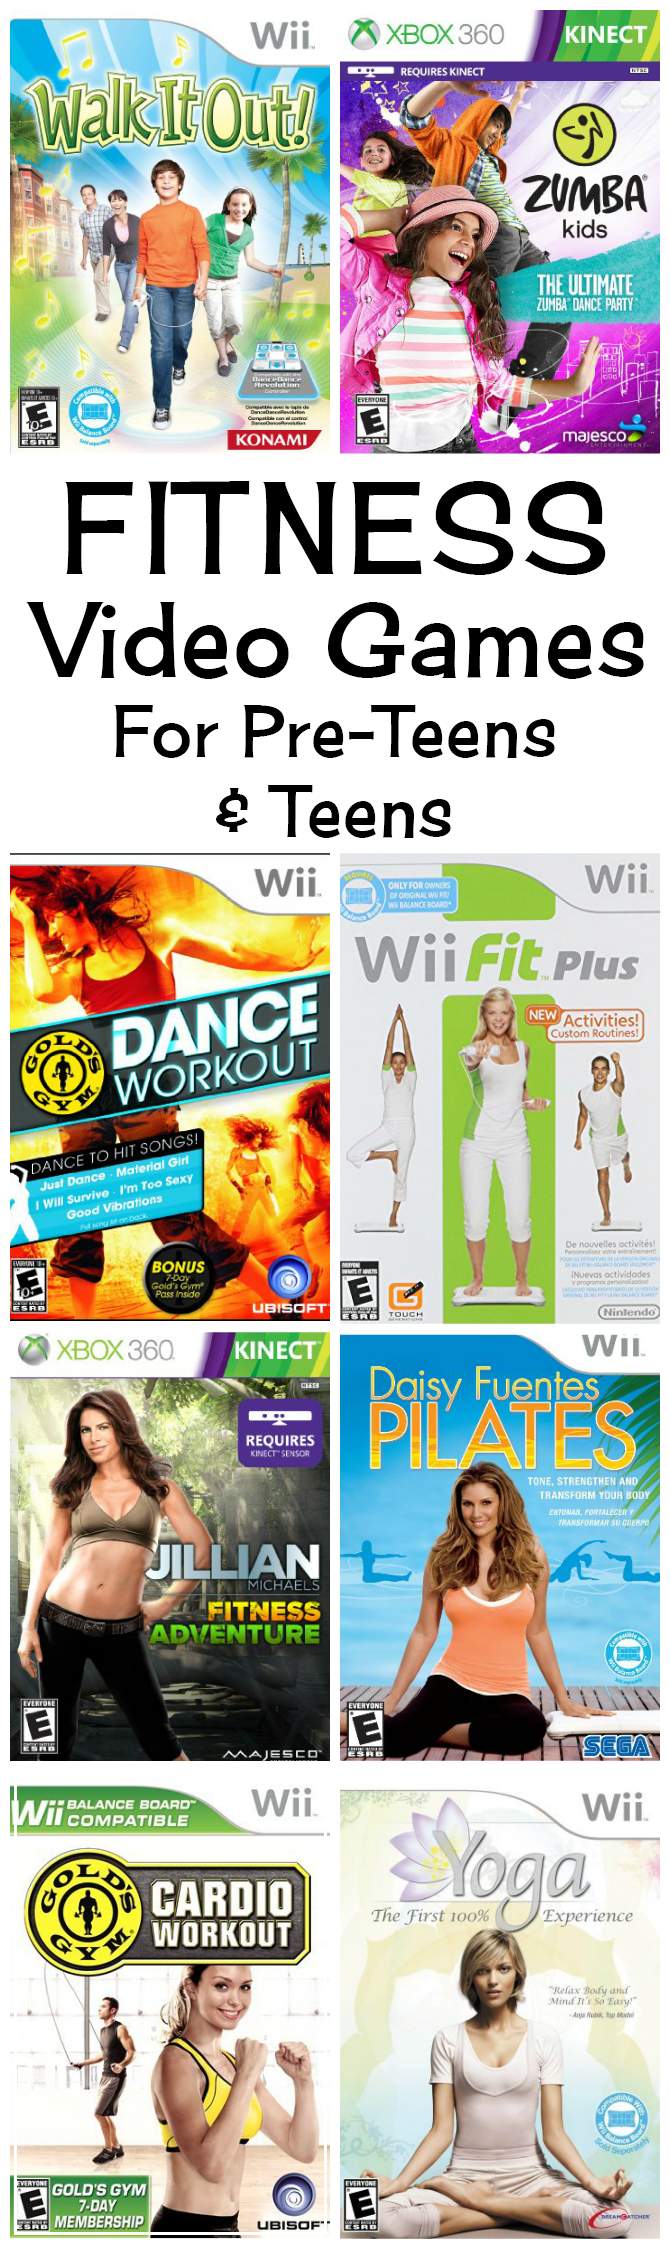 Best Fitness Video Games For Kids To Get Up And Get Moving ...